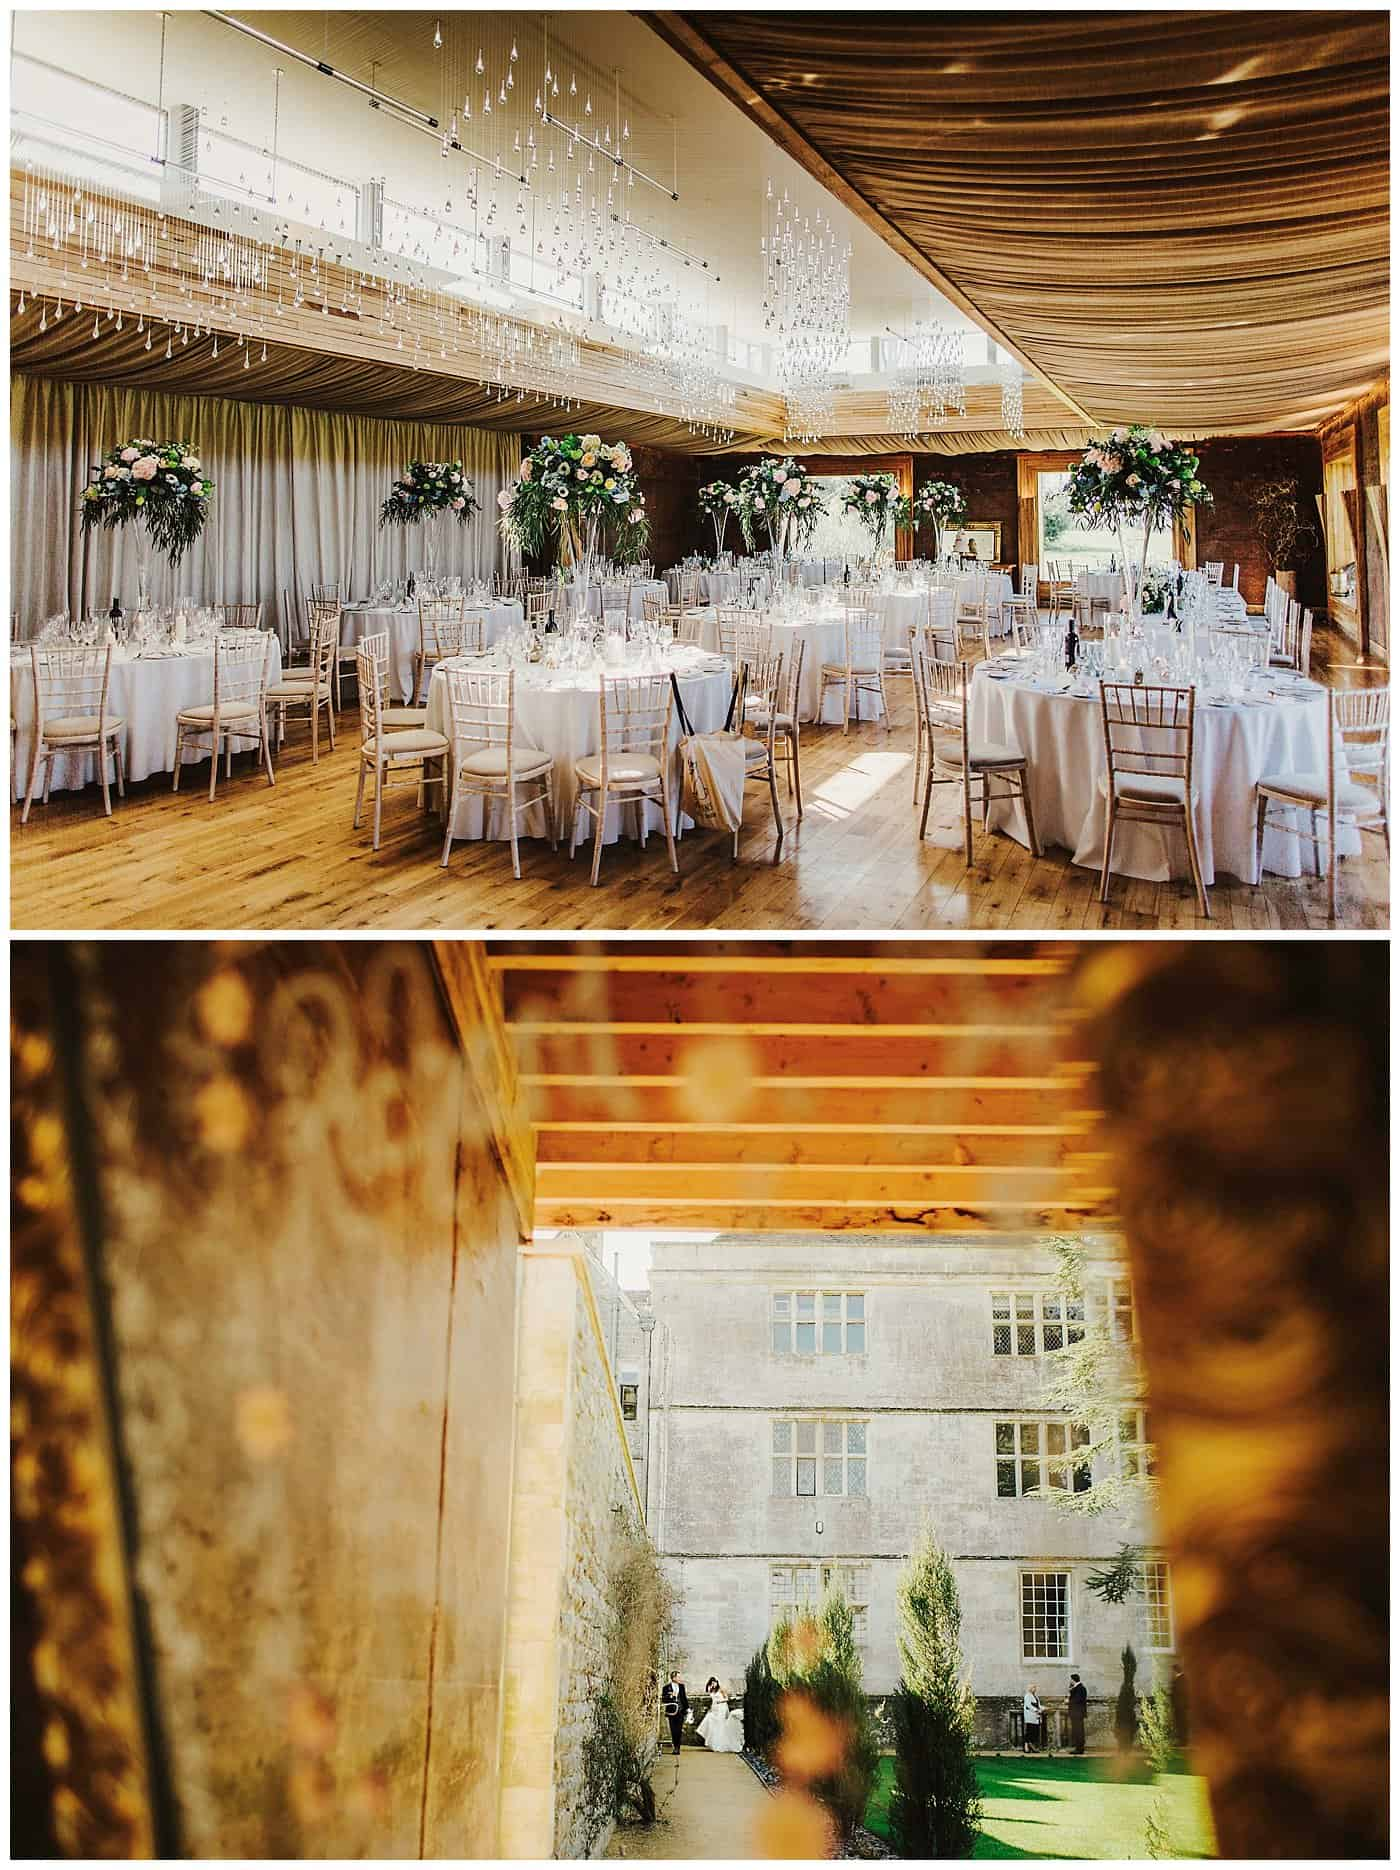 elmore court wedding reception venue